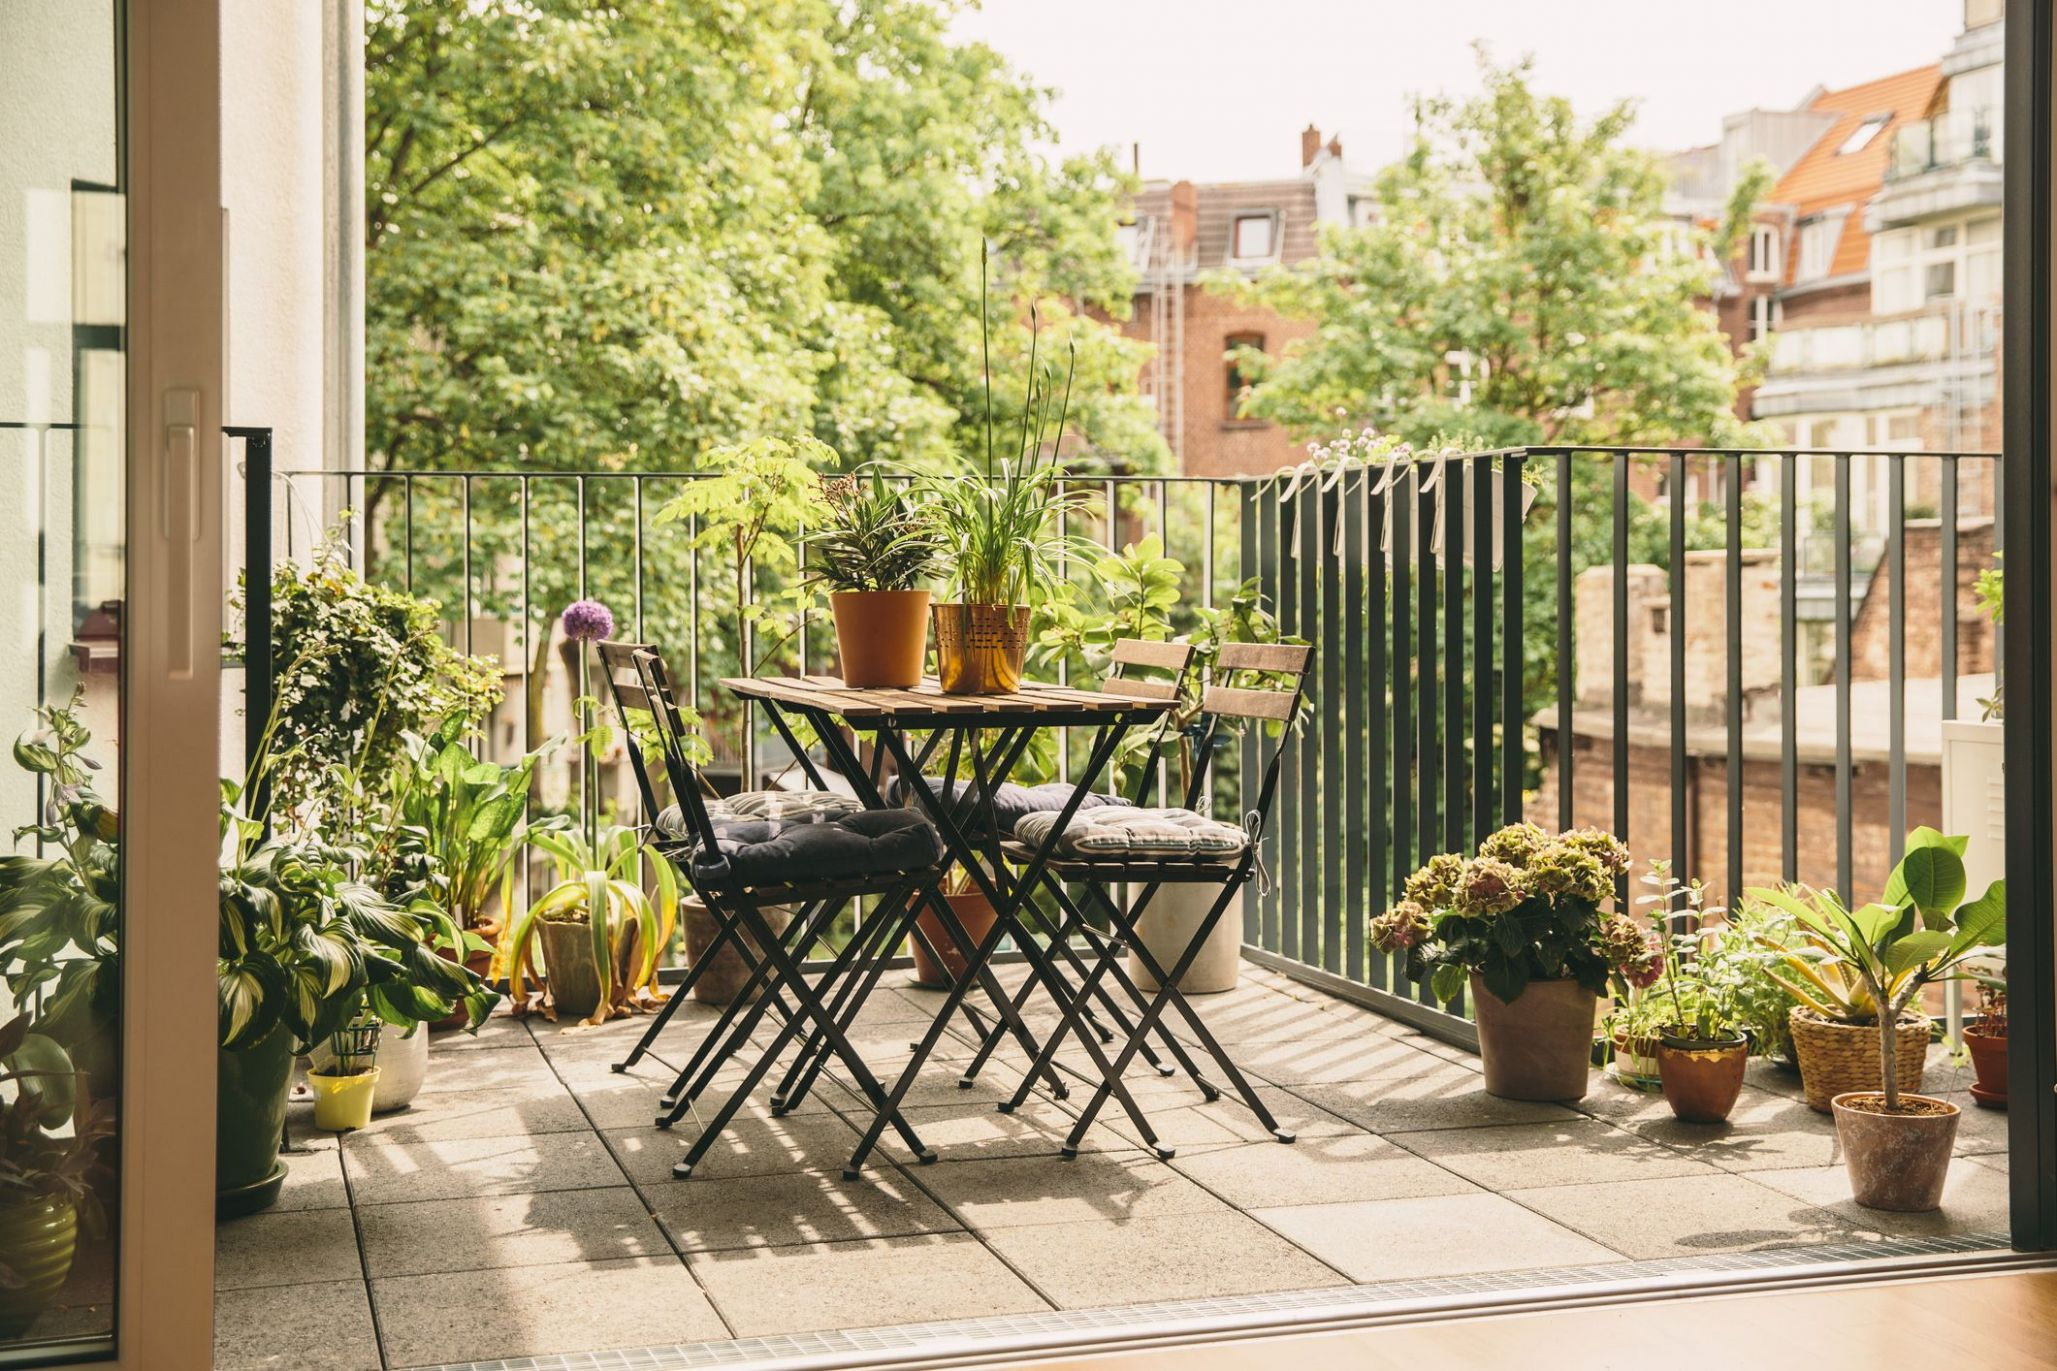 Balcony Garden Ideas - Plants, Furniture and Affordable Updates - balcony planting ideas uk